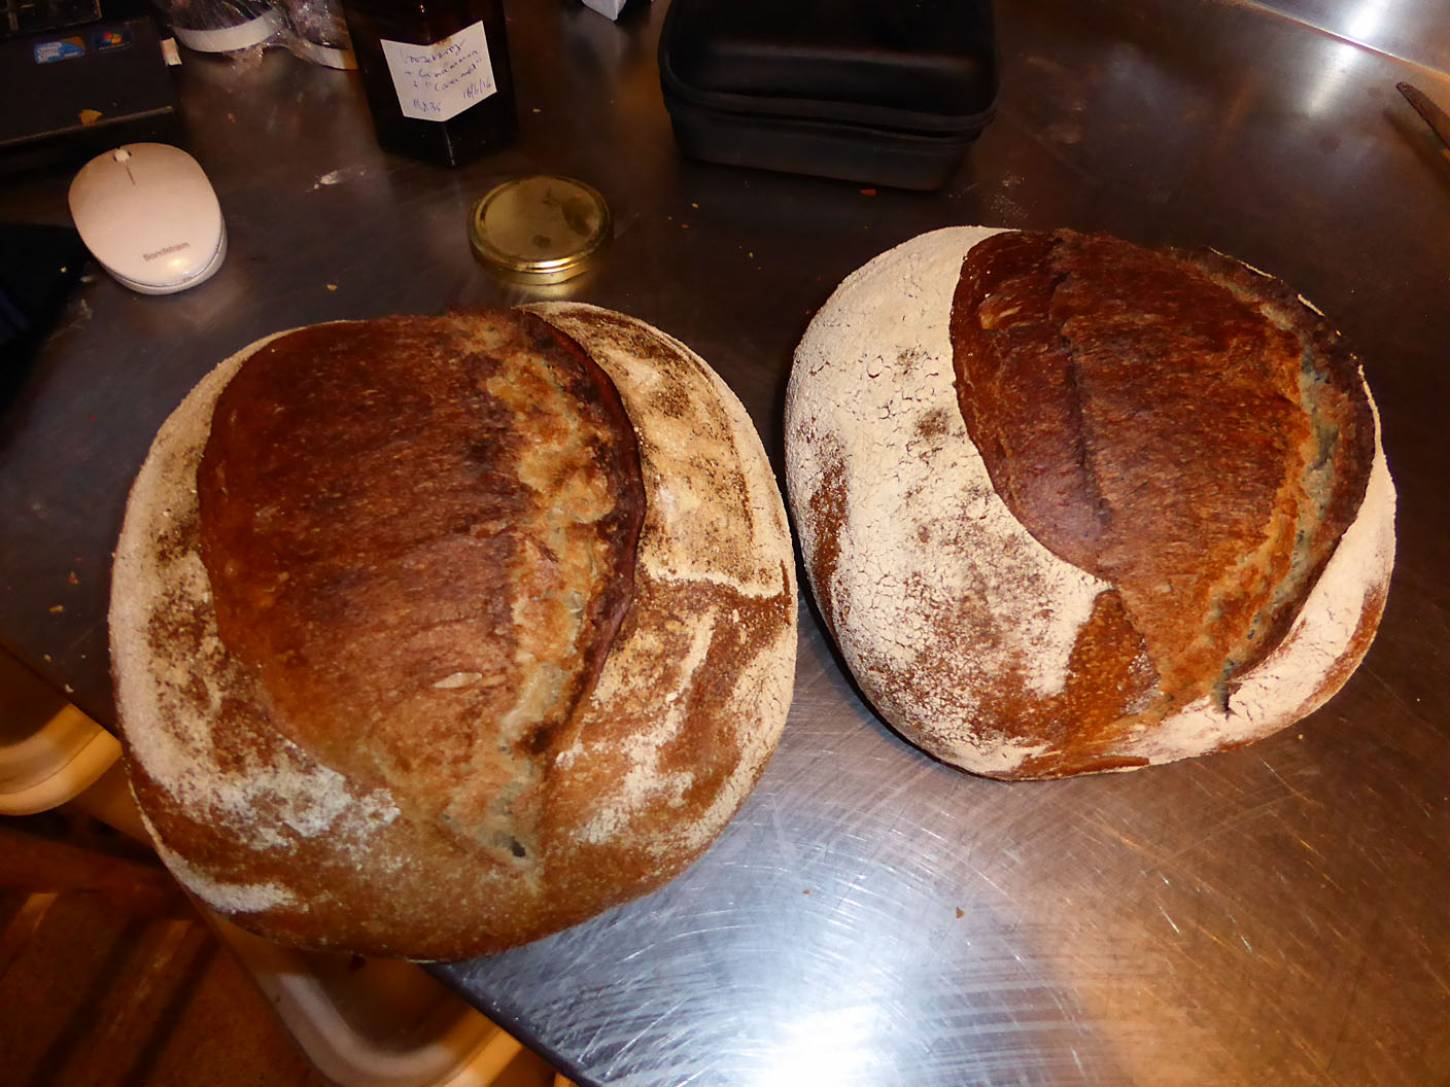 first baking test for the Miller's Choice, + orange juice on the right - 1:13pm&nbsp;23<sup>rd</sup>&nbsp;Nov.&nbsp;'17  <a href='http://maps.google.com/?t=h&q=51.480681,-0.108133&z=18&output=embed' target=_blank><img src='http://www.brockwell-bake.org.uk/img/marker.png' style='border:none;vertical-align:top' height=16px></a>